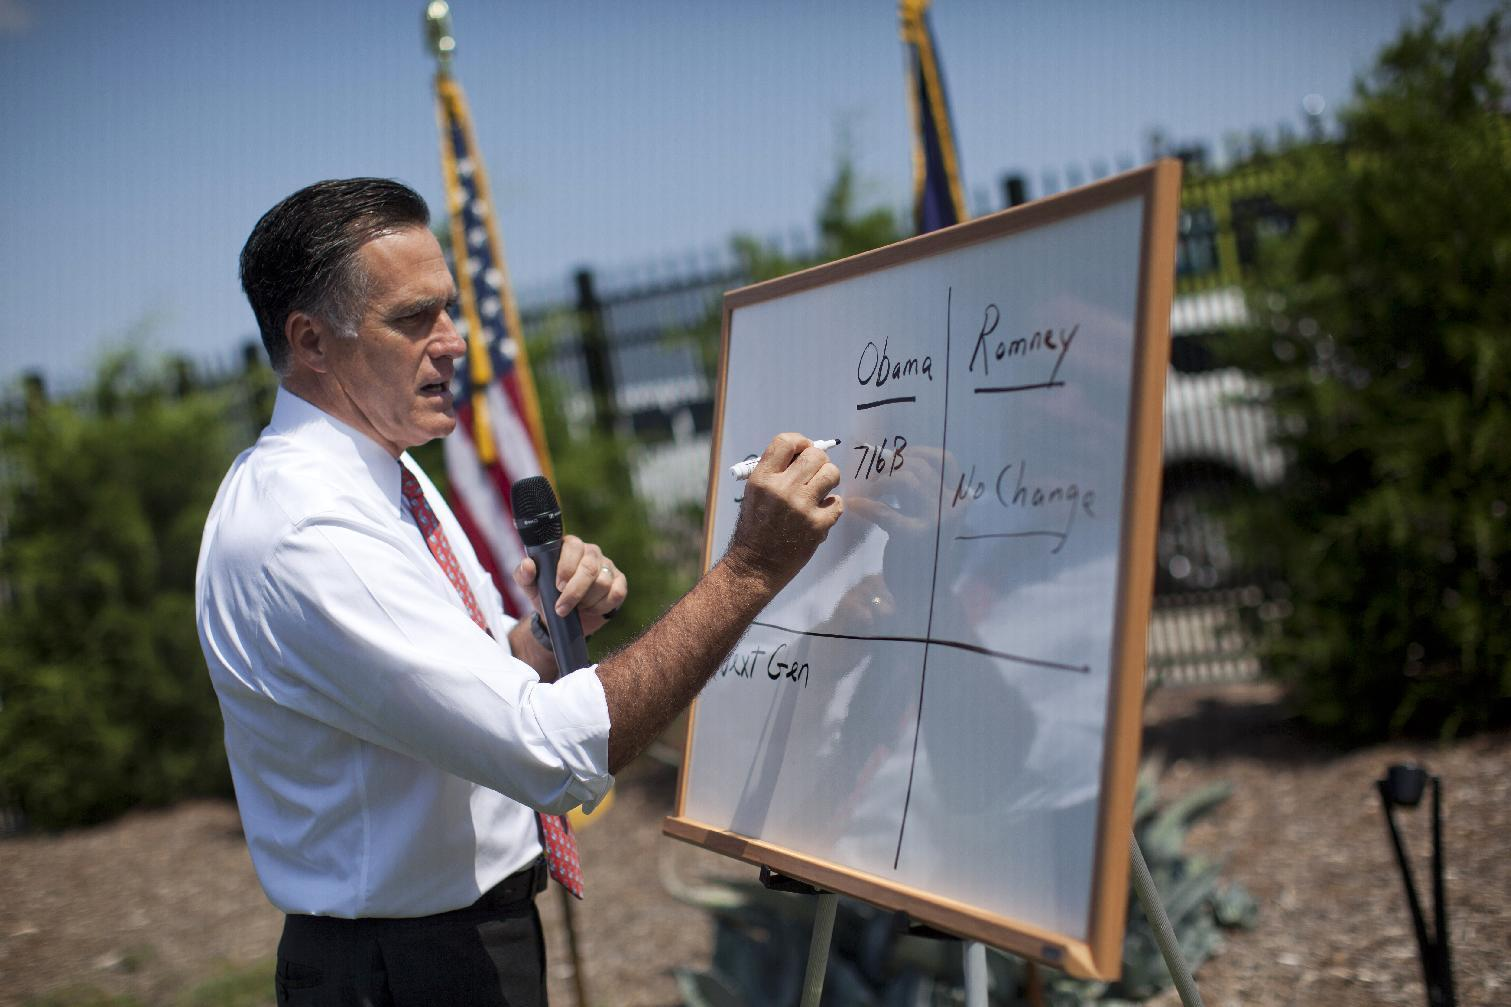 FILE - In this Aug. 16, 2012 file photo, Republican presidential candidate, former Massachusetts Gov. Mitt Romney writes on a white board as he talks about Medicare during a news conference in Greer, S.C . The U.S. health care system squanders $750 billion a year — roughly 30 cents of every medical dollar — through unneeded care, Byzantine paperwork, fraud and other waste, the influential Institute of Medicine said Thursday in a report that ties directly into the presidential campaign. President Barack Obama and Republican Mitt Romney are accusing each other of trying to slash Medicare and put seniors at risk. But the counter-intuitive finding from the report is that deep cuts are possible without rationing, and a leaner system may even produce better quality. (AP Photo/Evan Vucci, File)